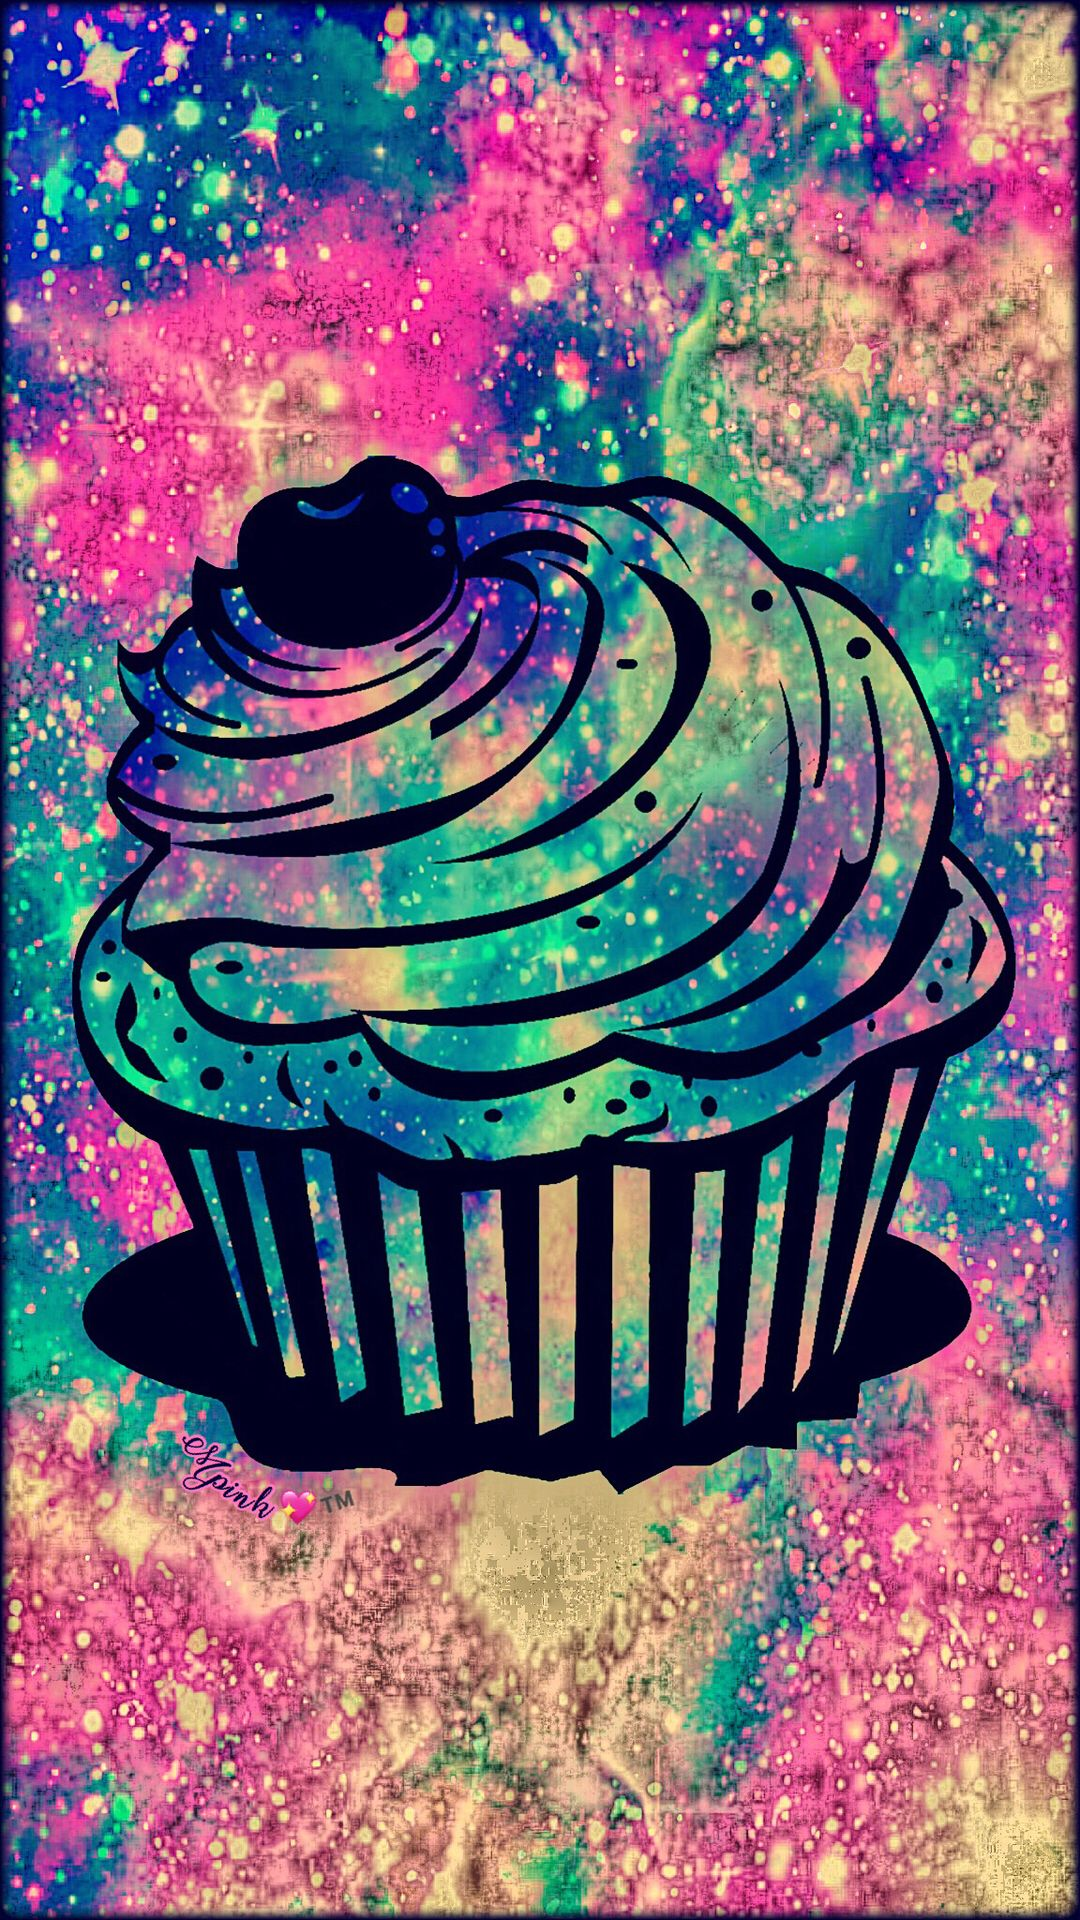 Vintage Cupcake Galaxy Wallpaper Androidwallpaper Iphonewallpaper